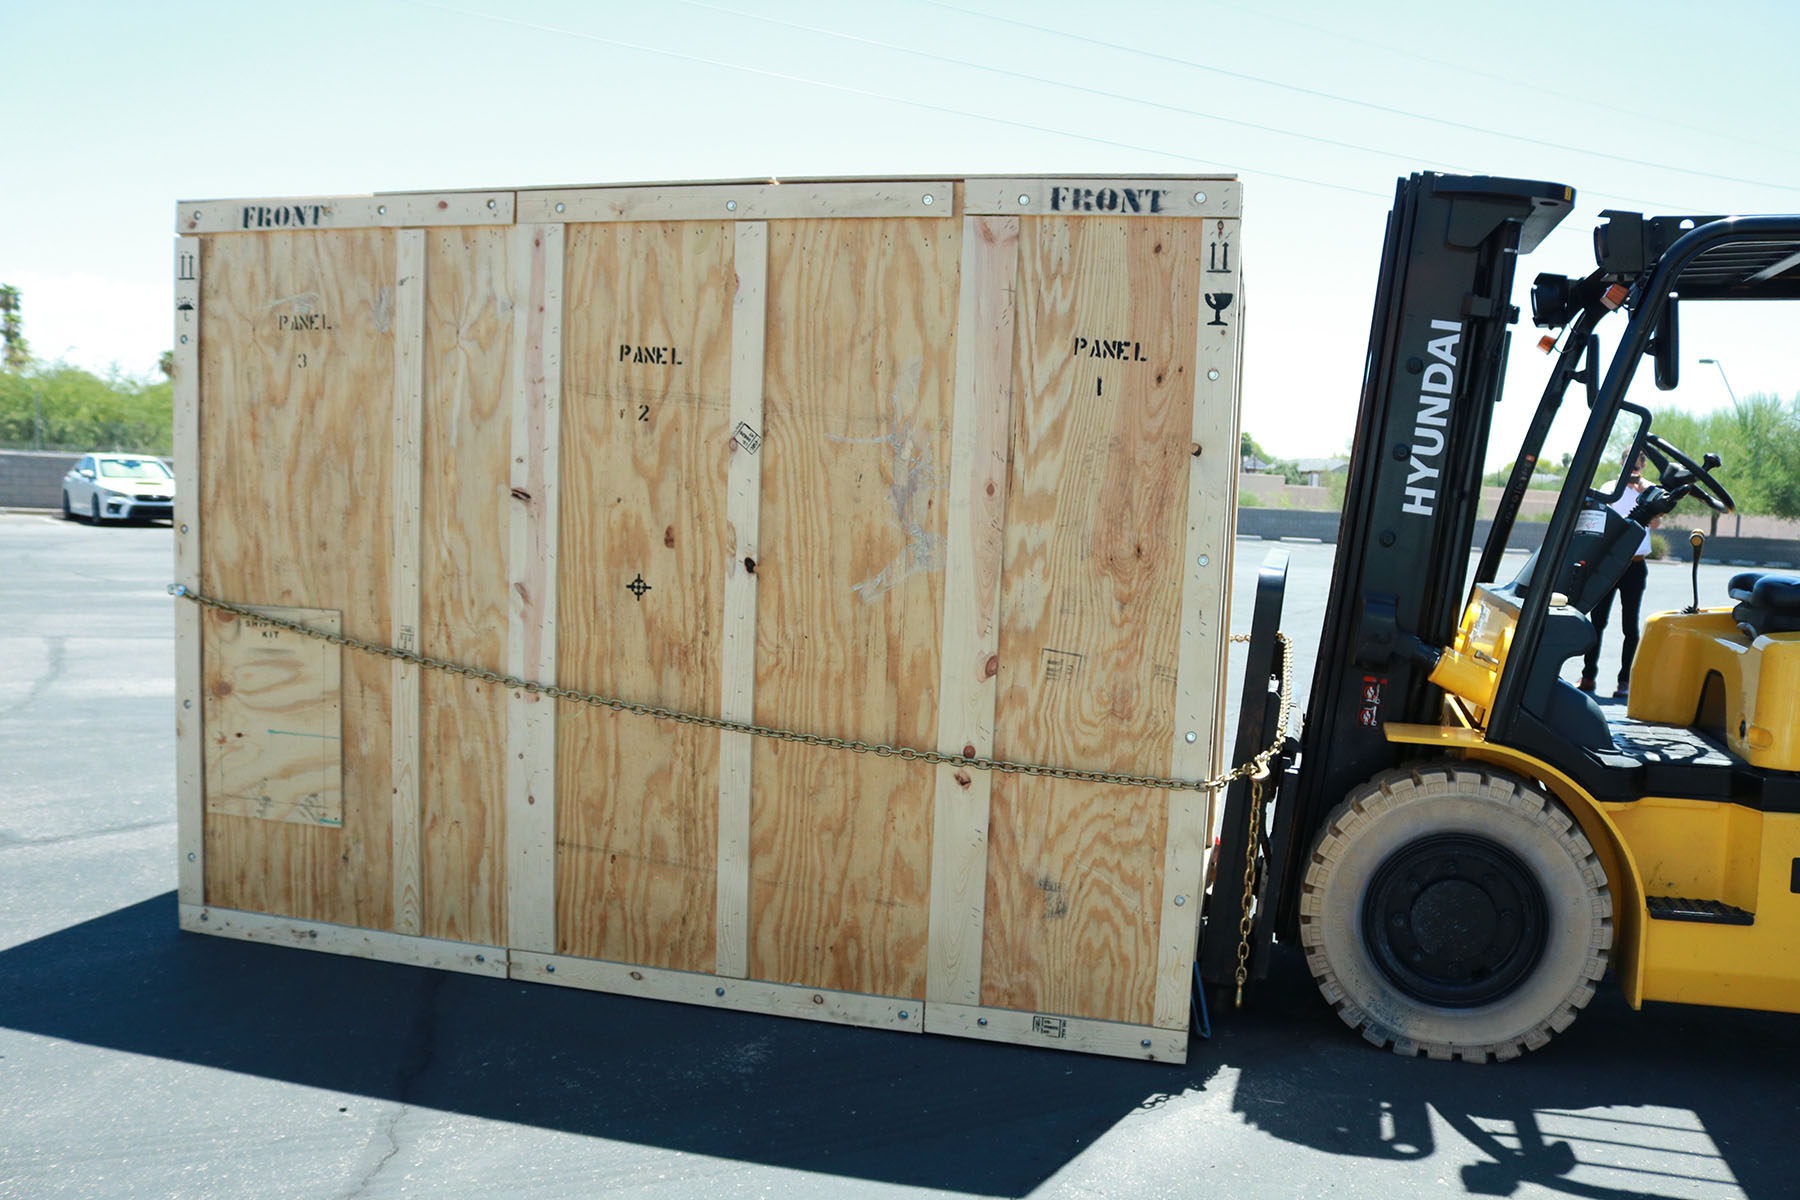 PADT's new F900 Being Delivered in a very big box